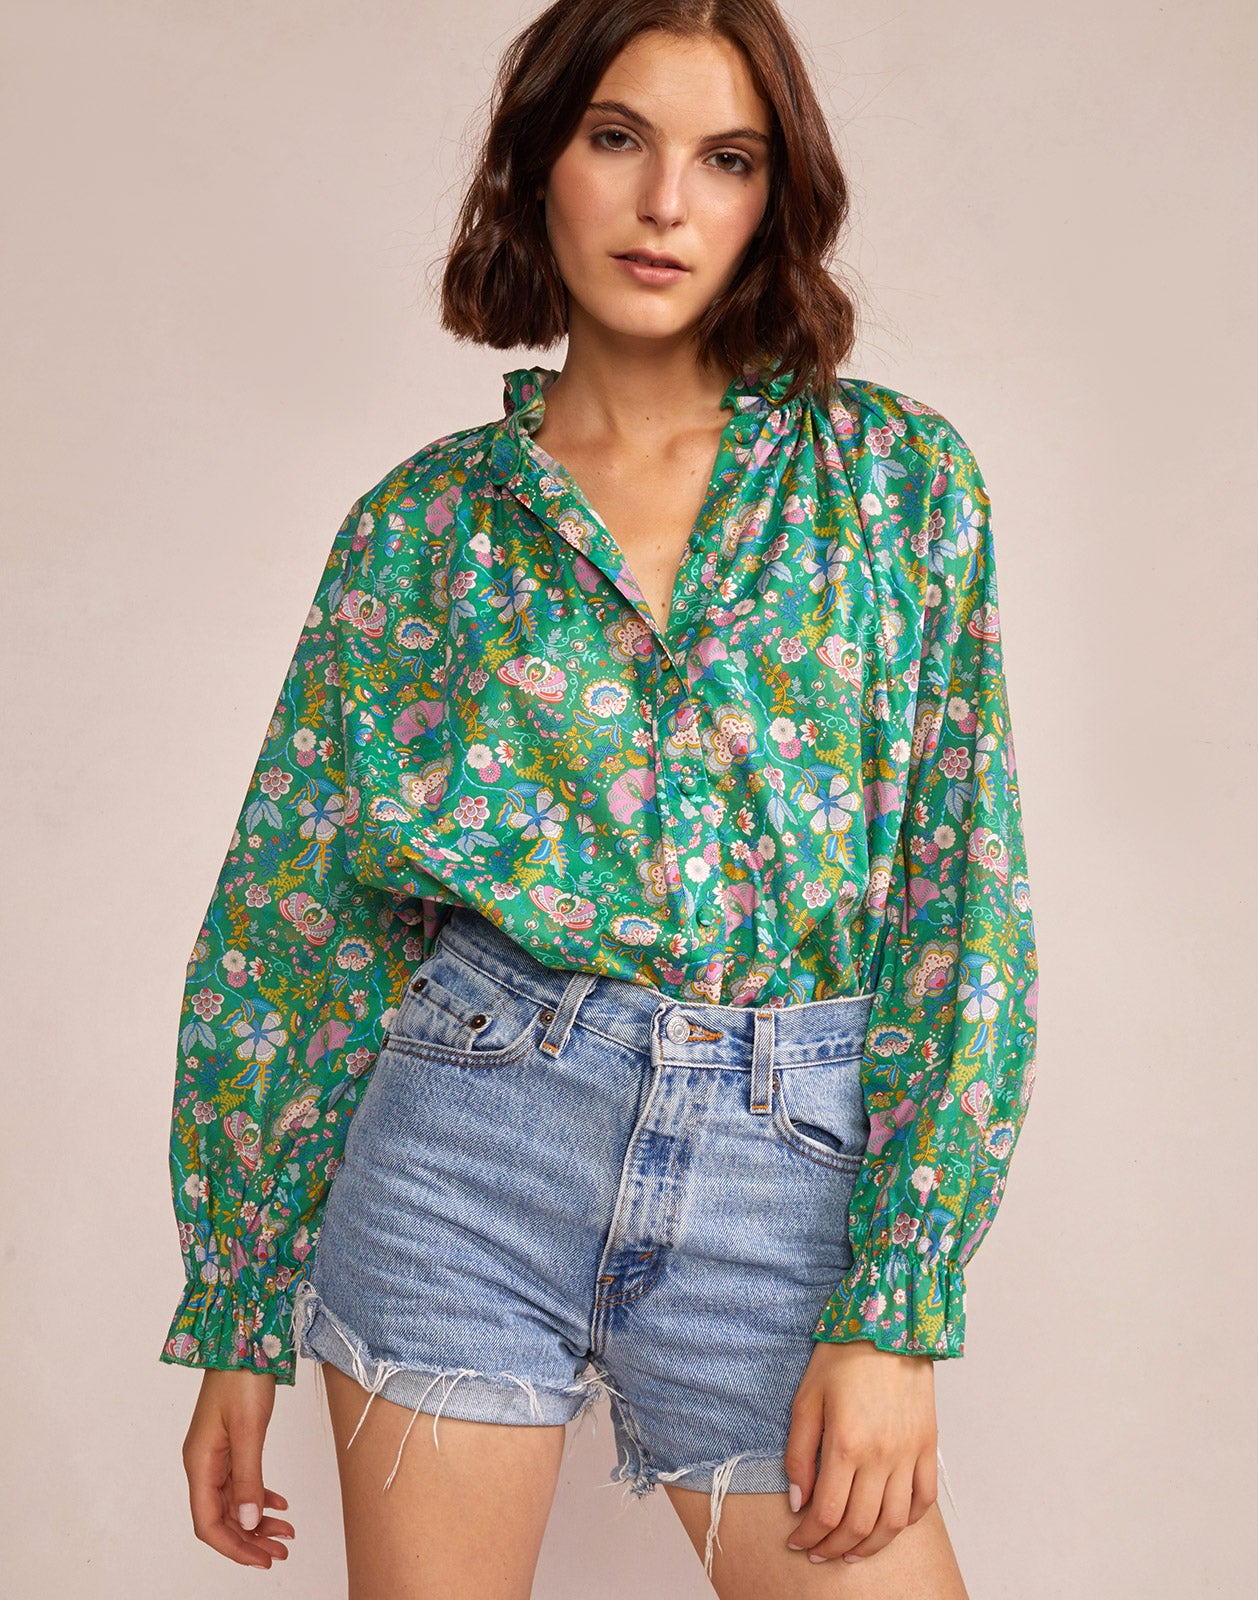 Alternate close up view model wearing Floral Cotton Waterfall Top